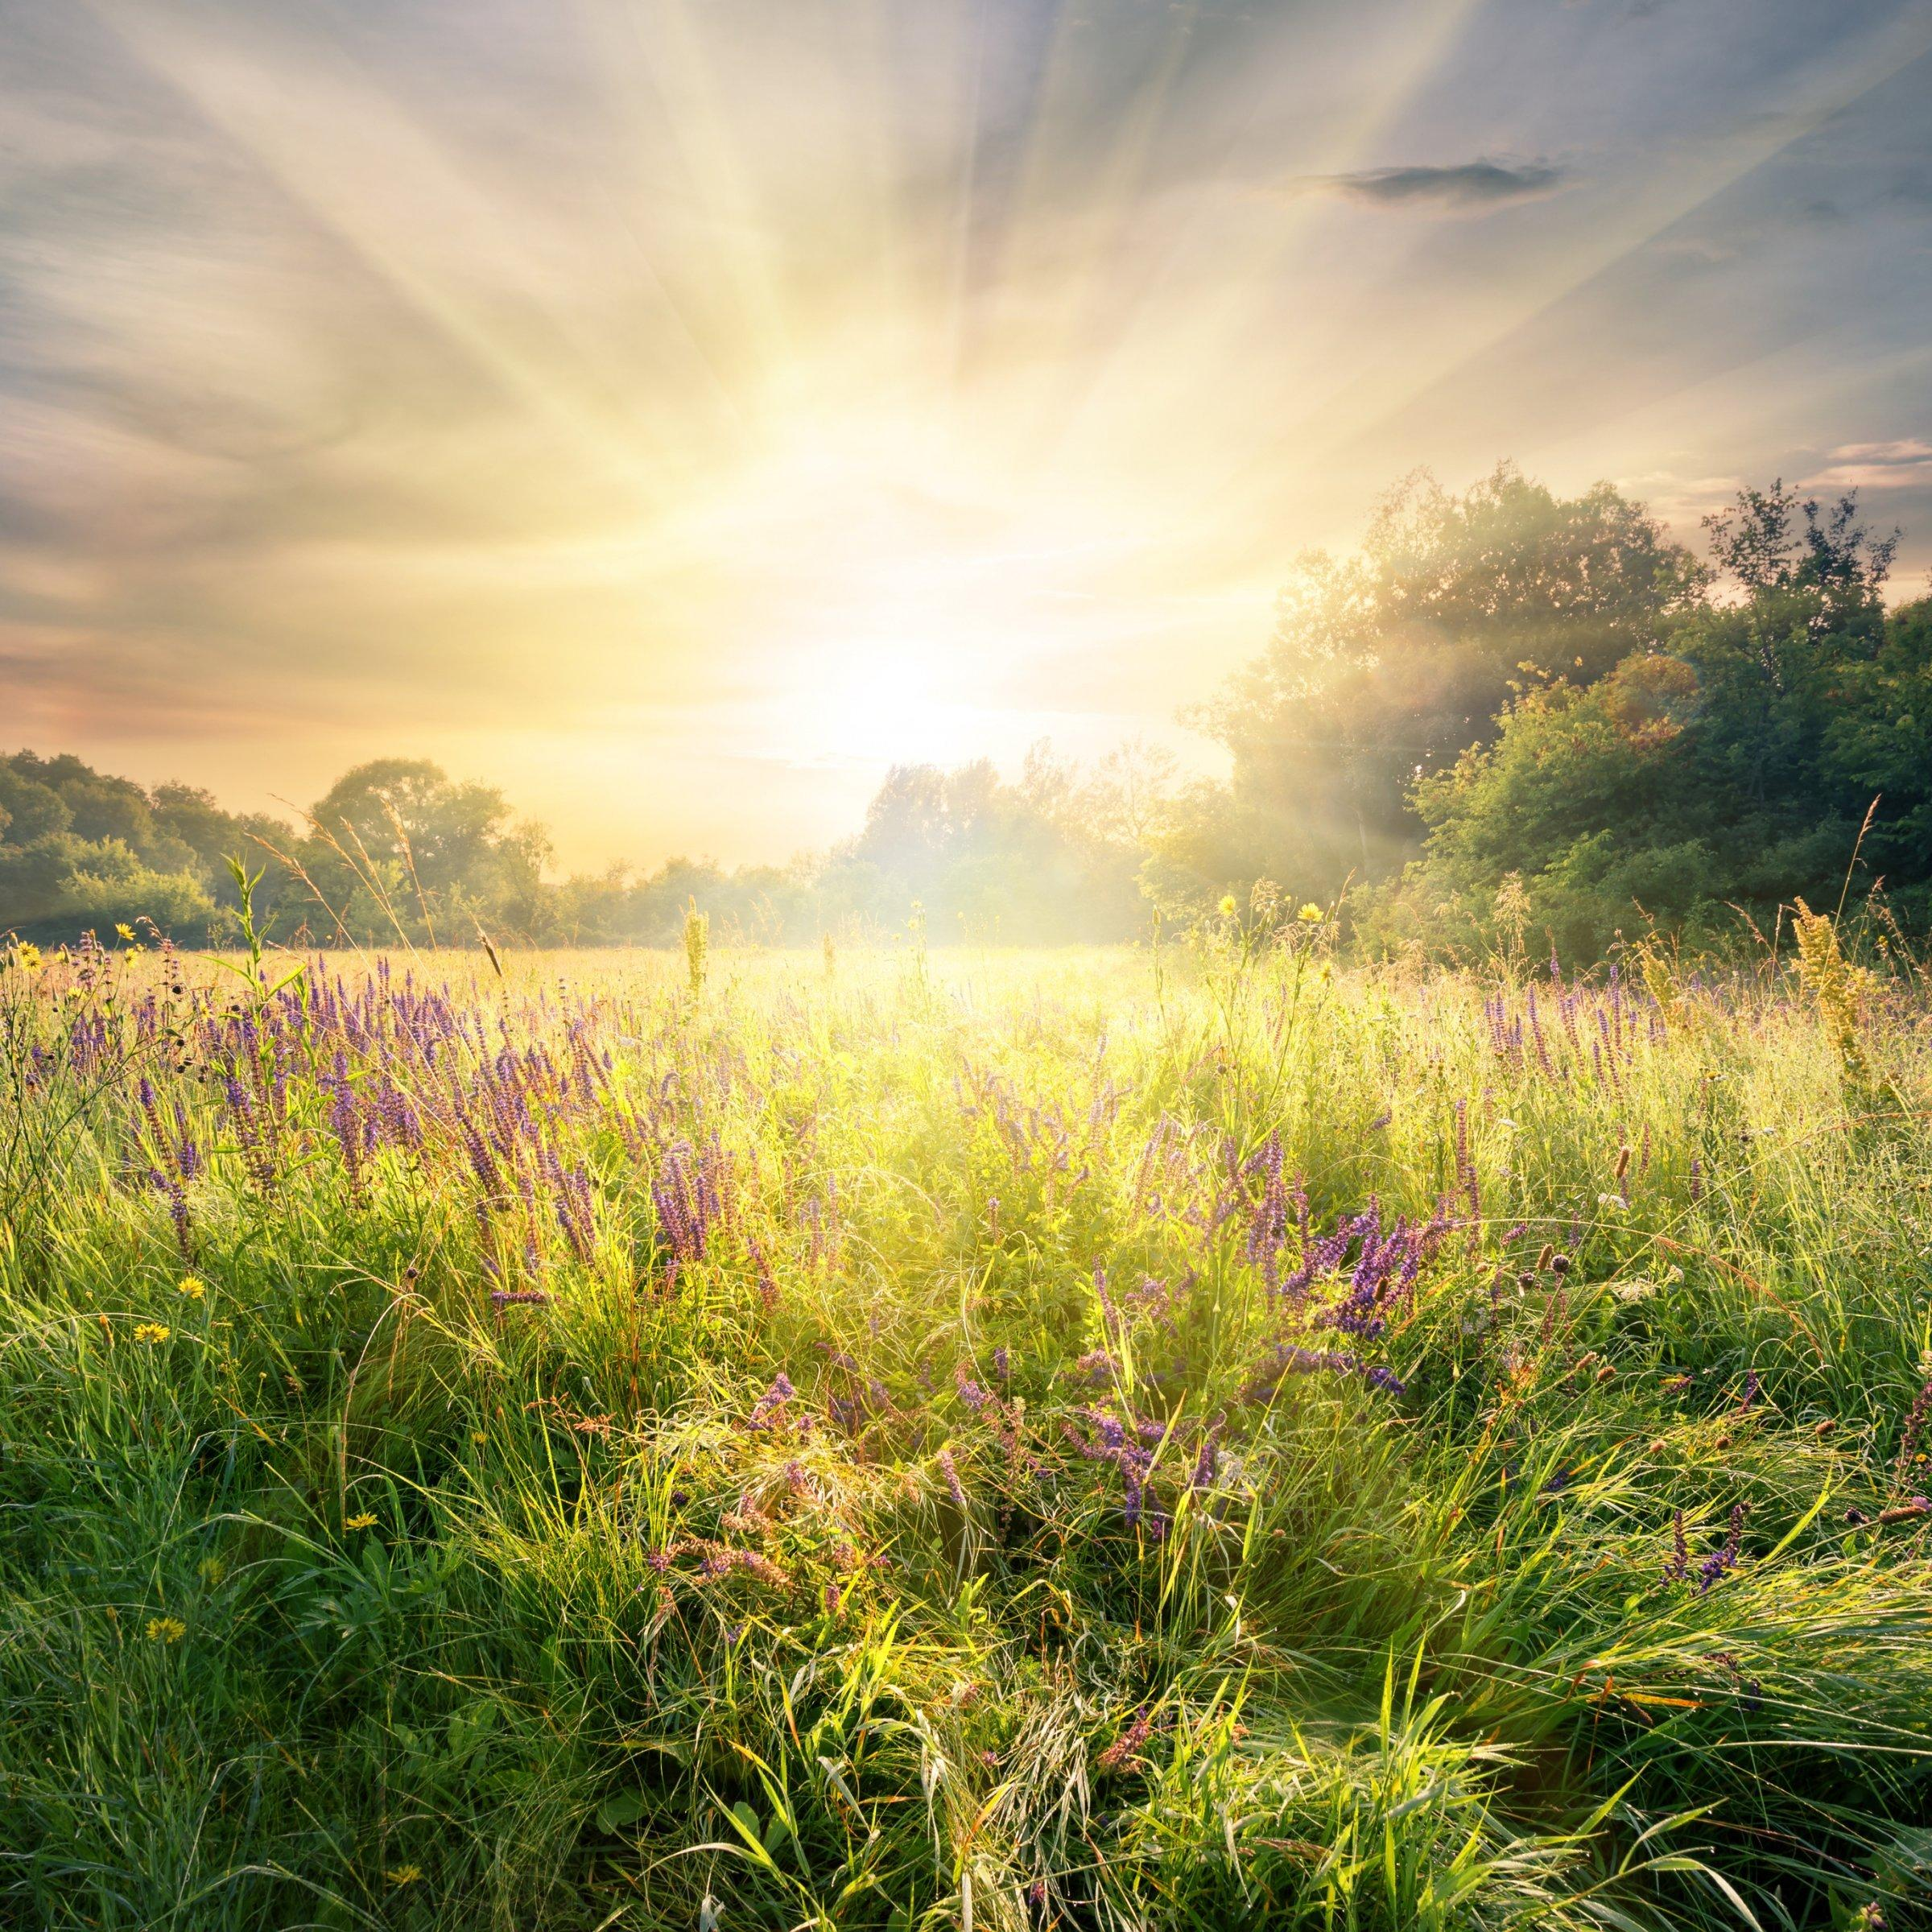 Meadow with wildflowers under the bright sun. Summer landscape.